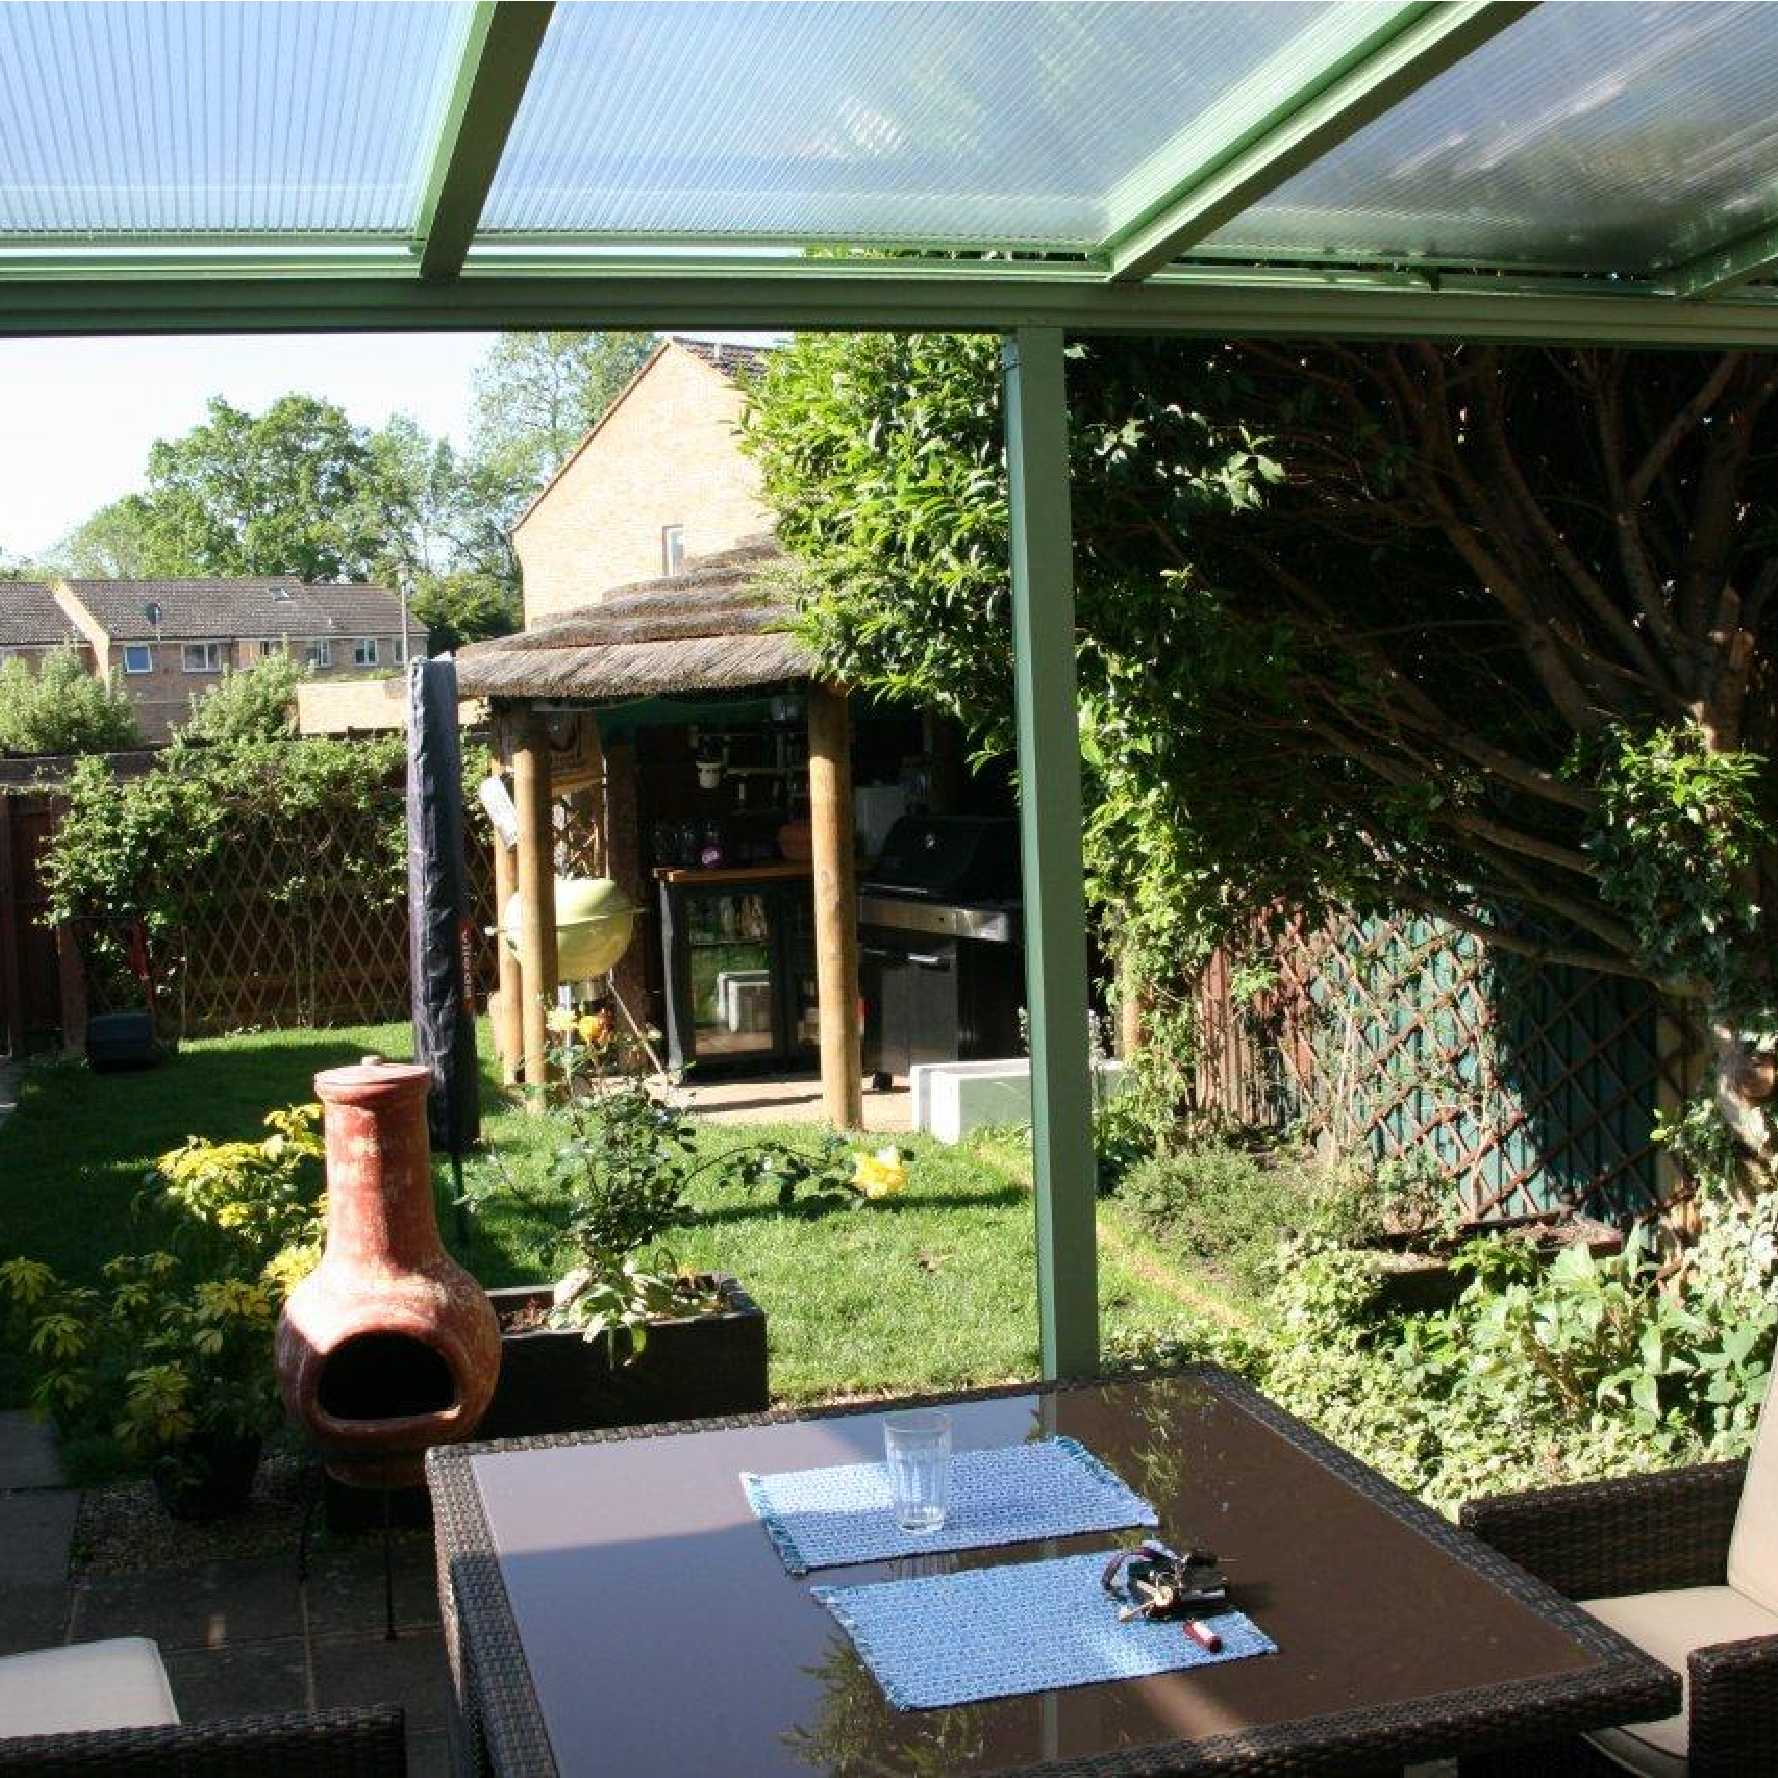 Affordable Omega Smart Lean-To Canopy with 16mm Polycarbonate Glazing - 5.2m (W) x 2.5m (P), (3) Supporting Posts